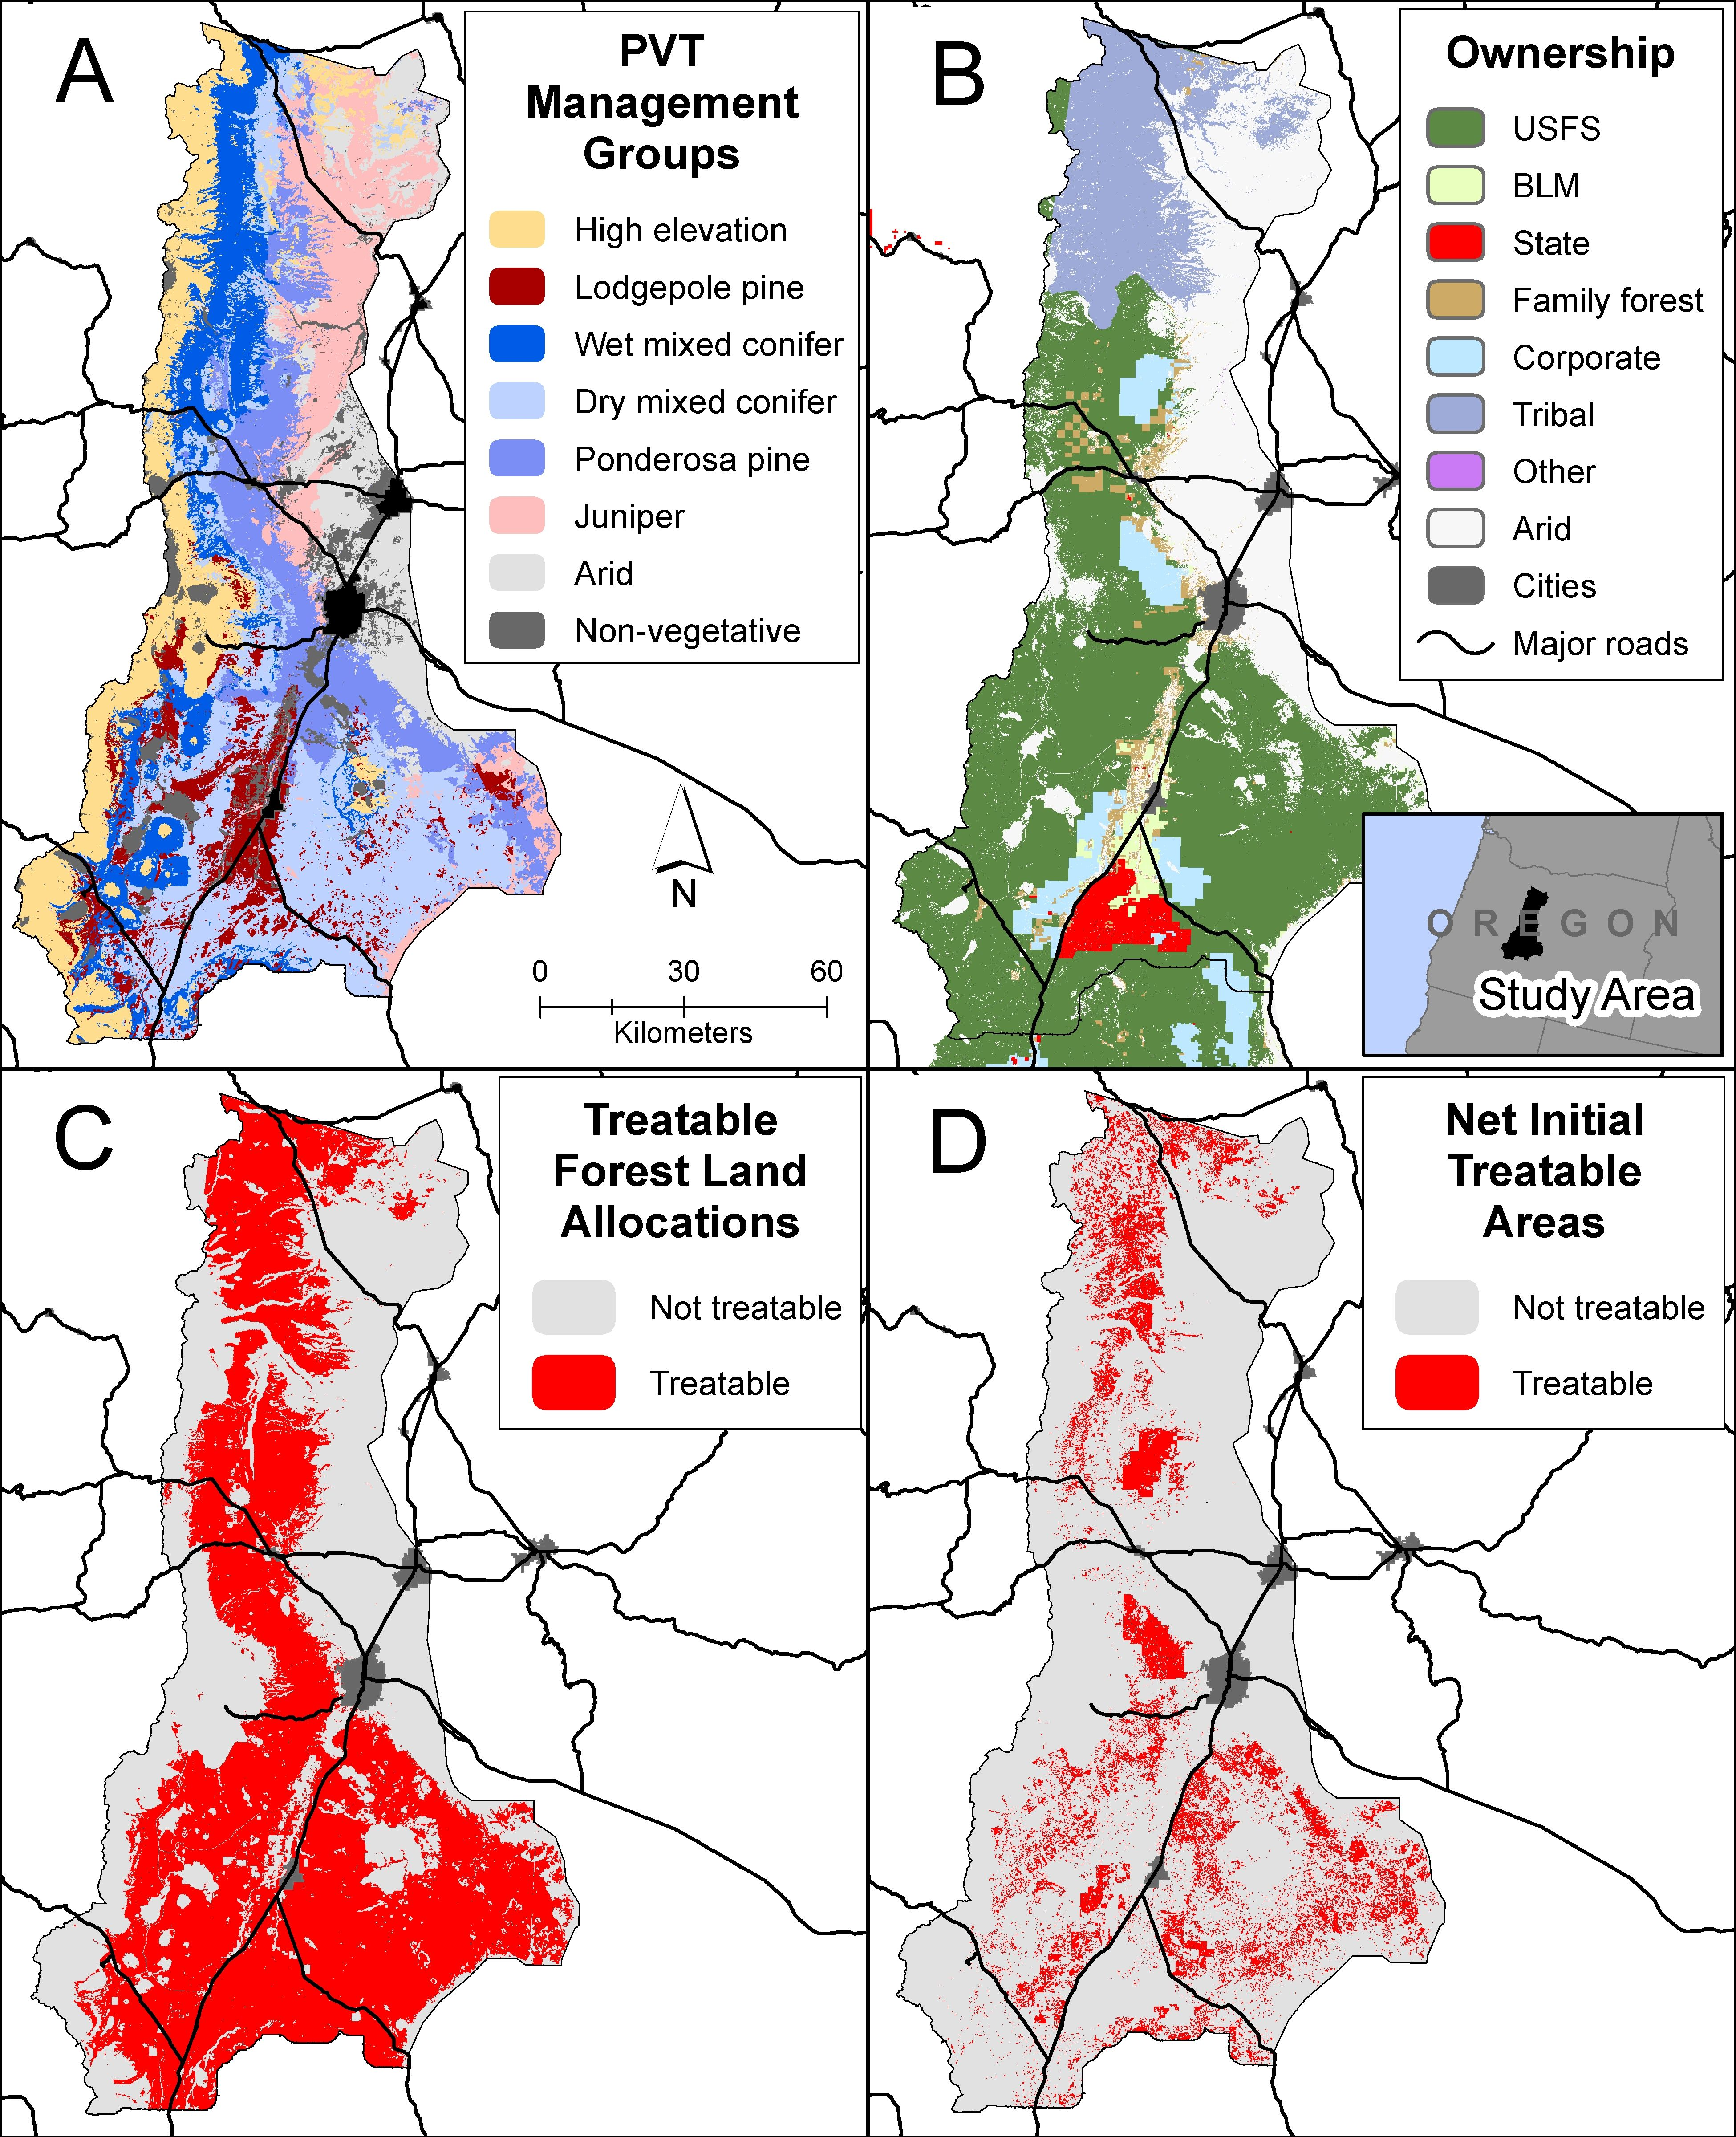 Fig 1 Maps of the study area in Oregon USA indicating vegetation